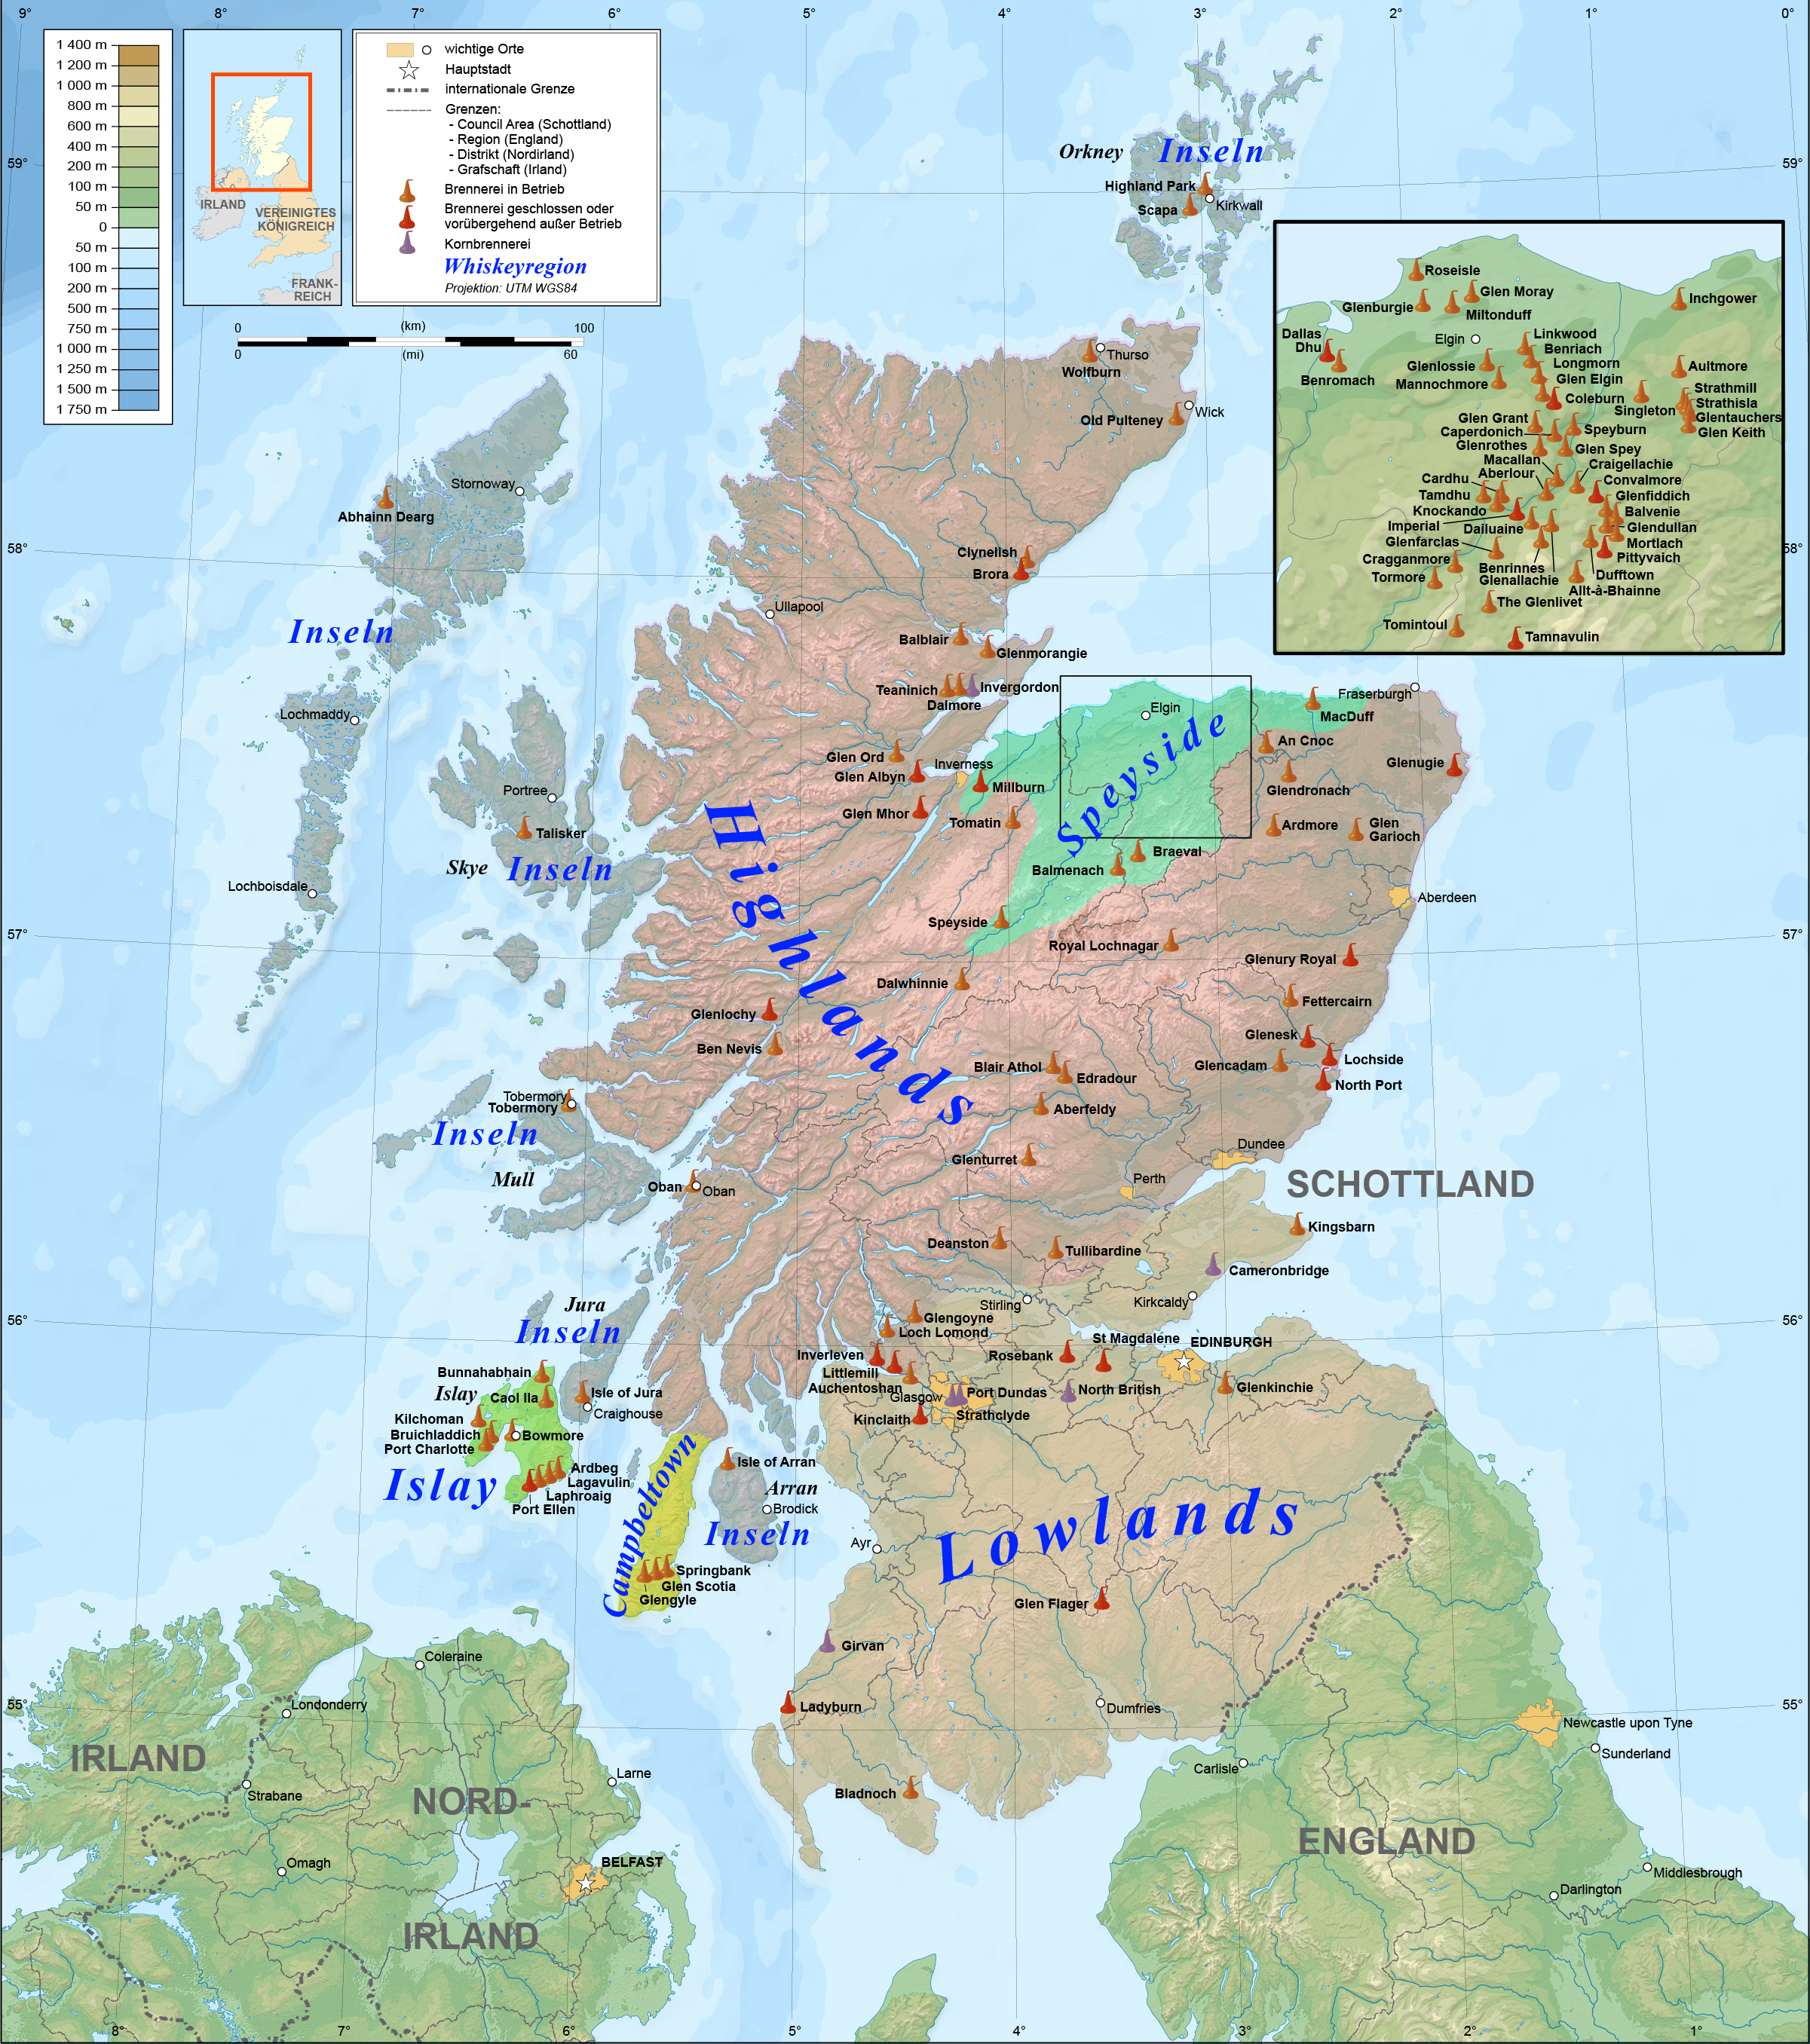 Schottland Karte Pdf.File Scotland Map Of Whisky Distilleries De Png Wikimedia